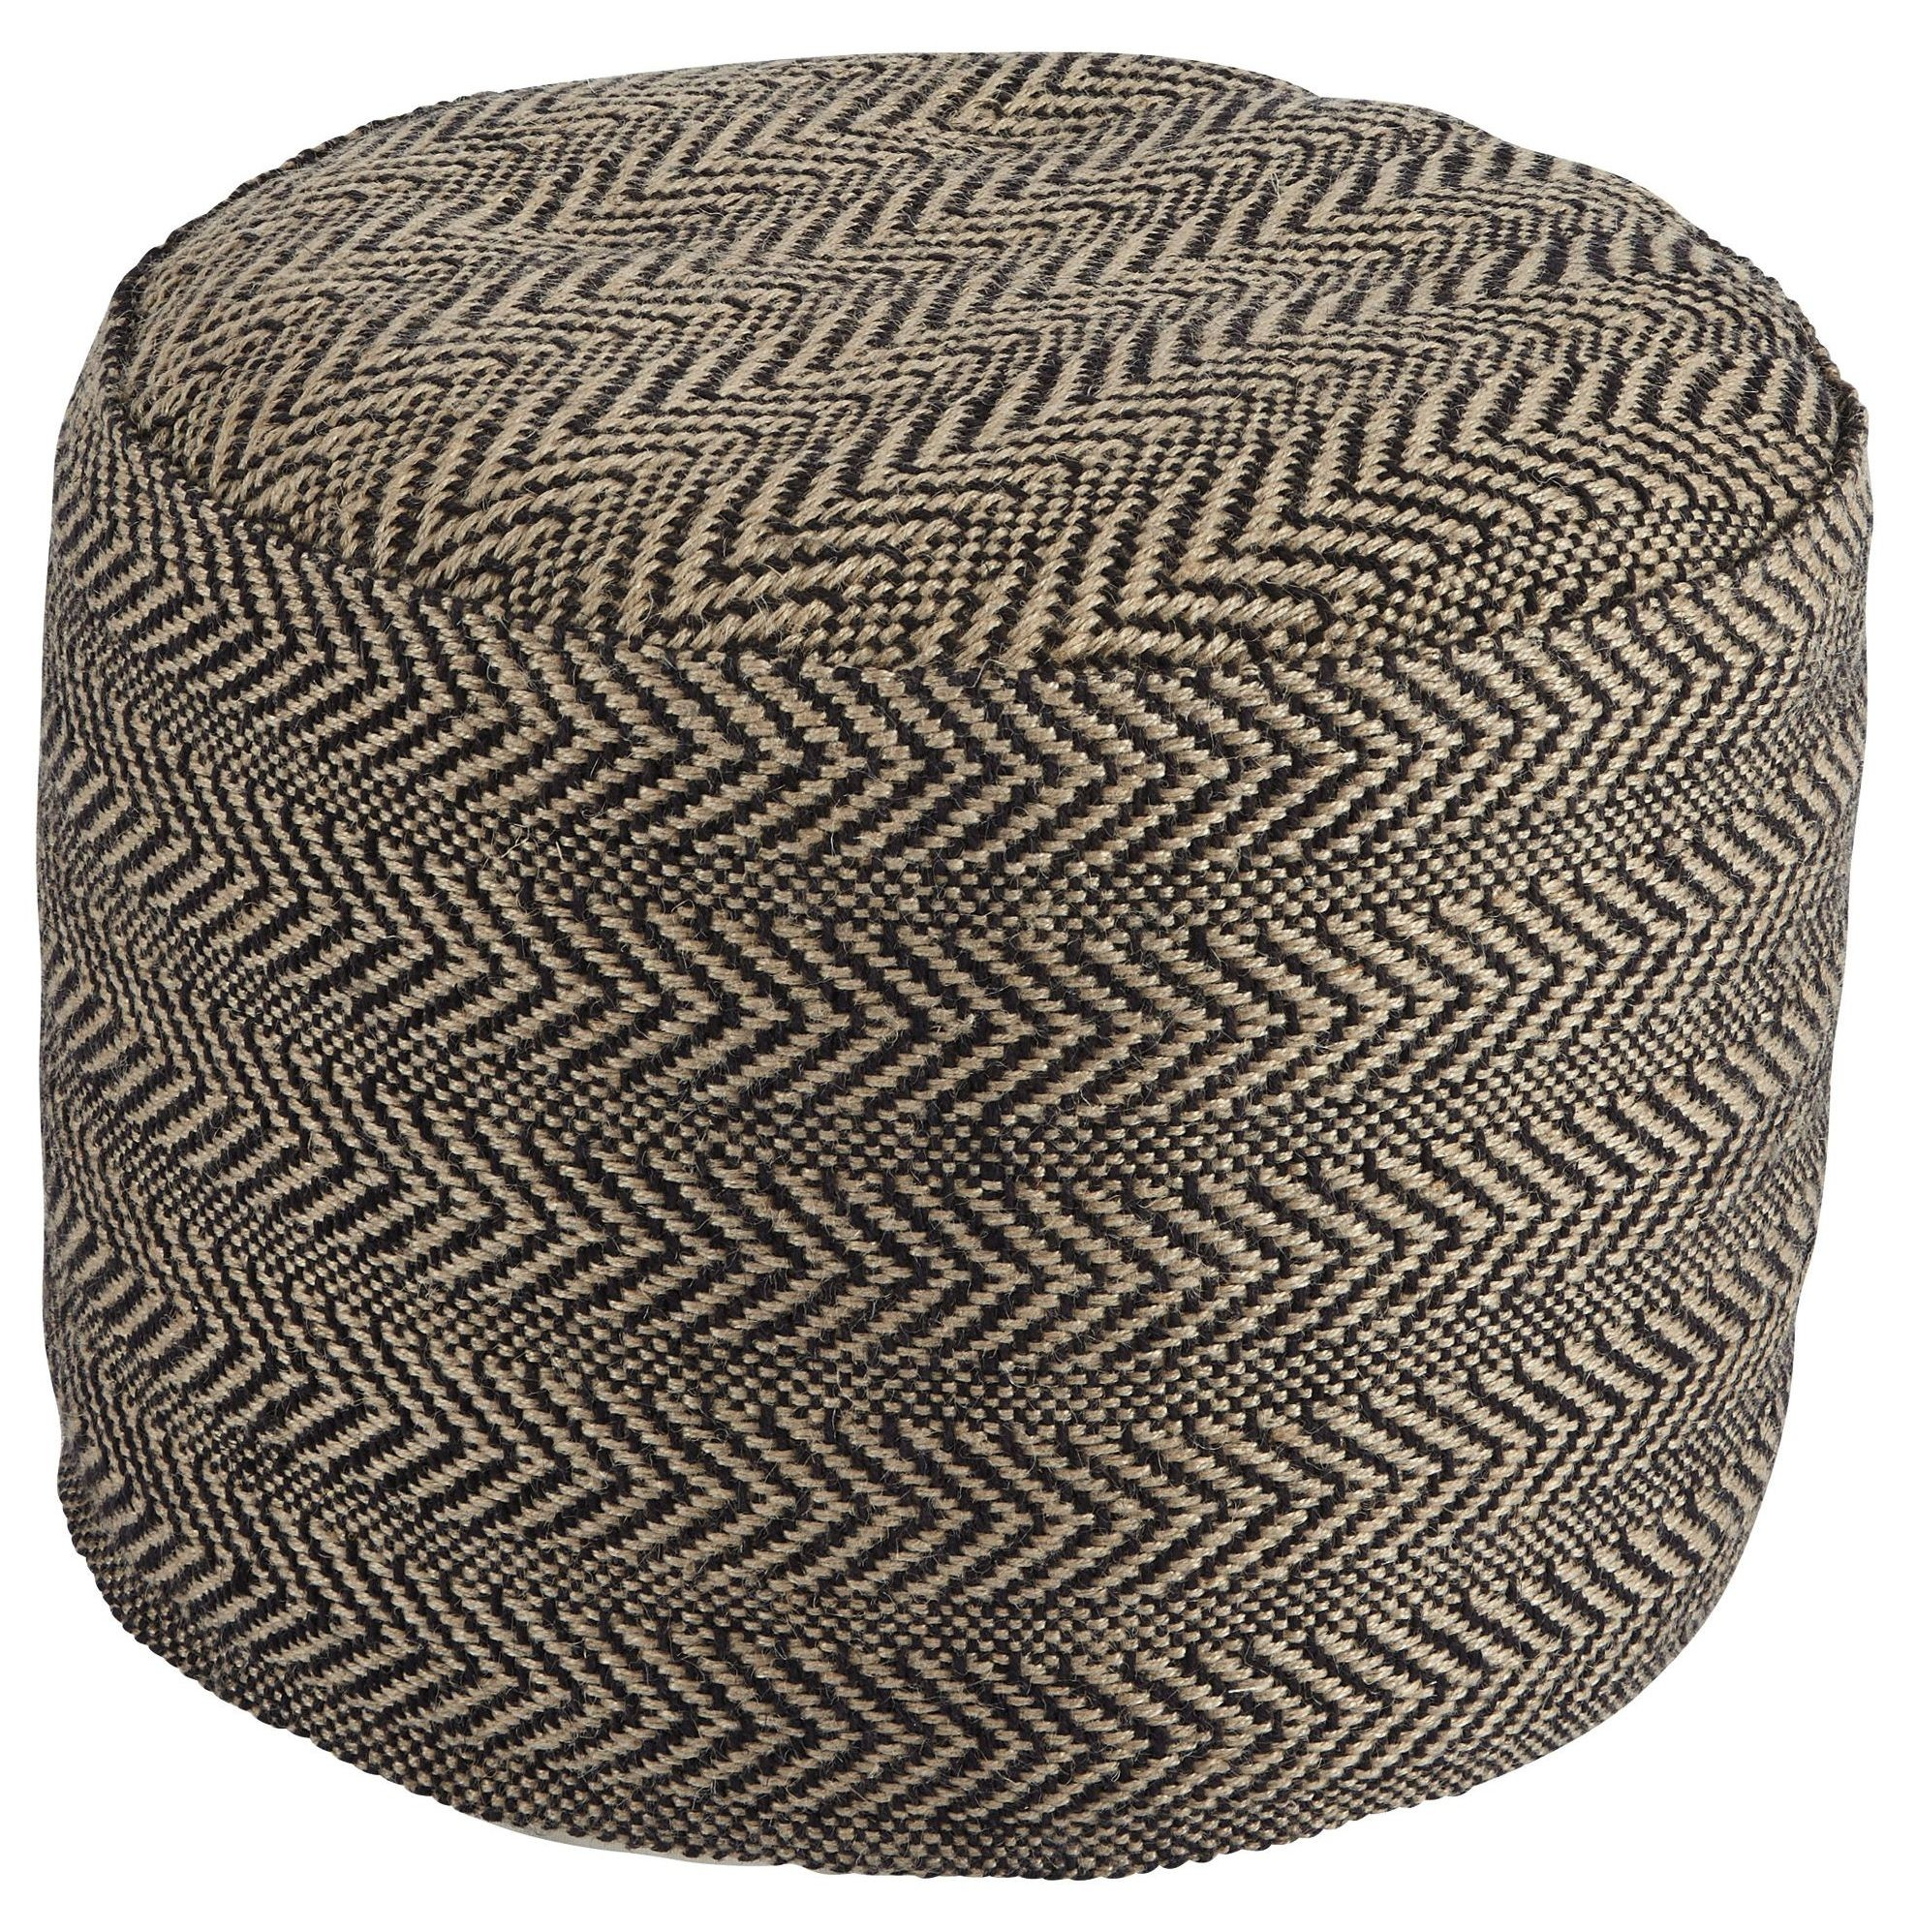 Chevron Natural Pouf from Ashley A